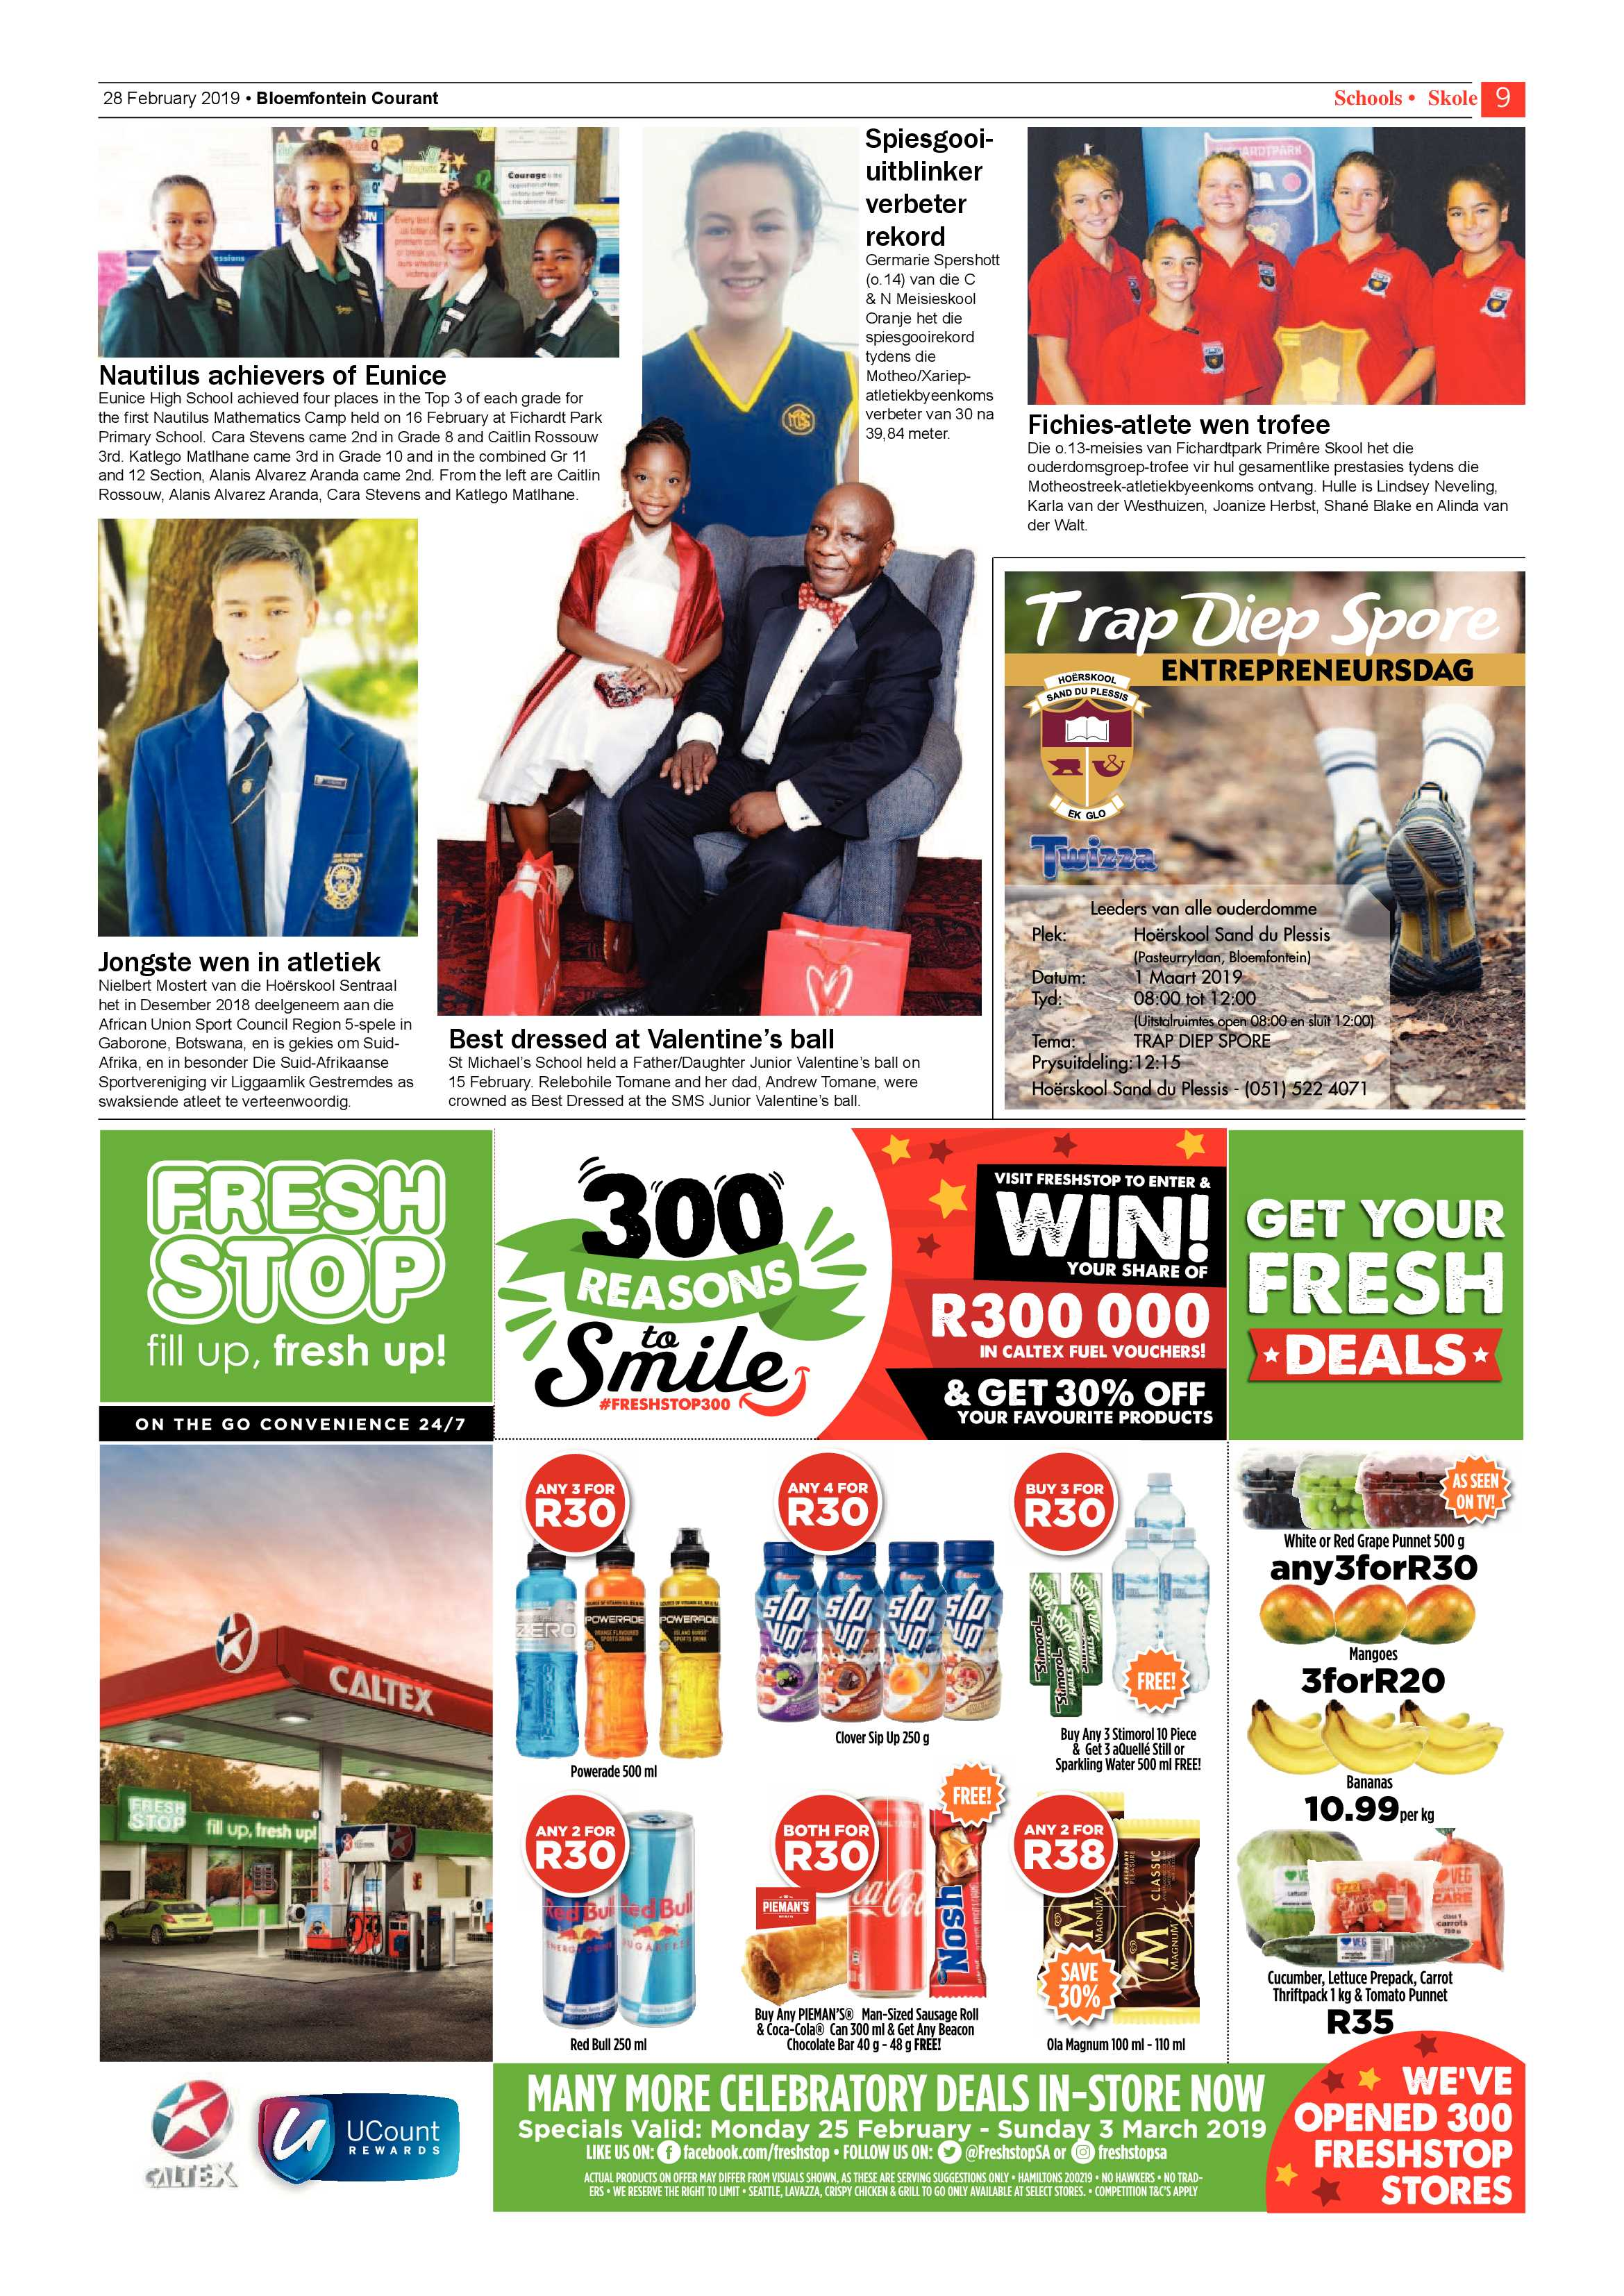 courant-28-february-2019-epapers-page-9